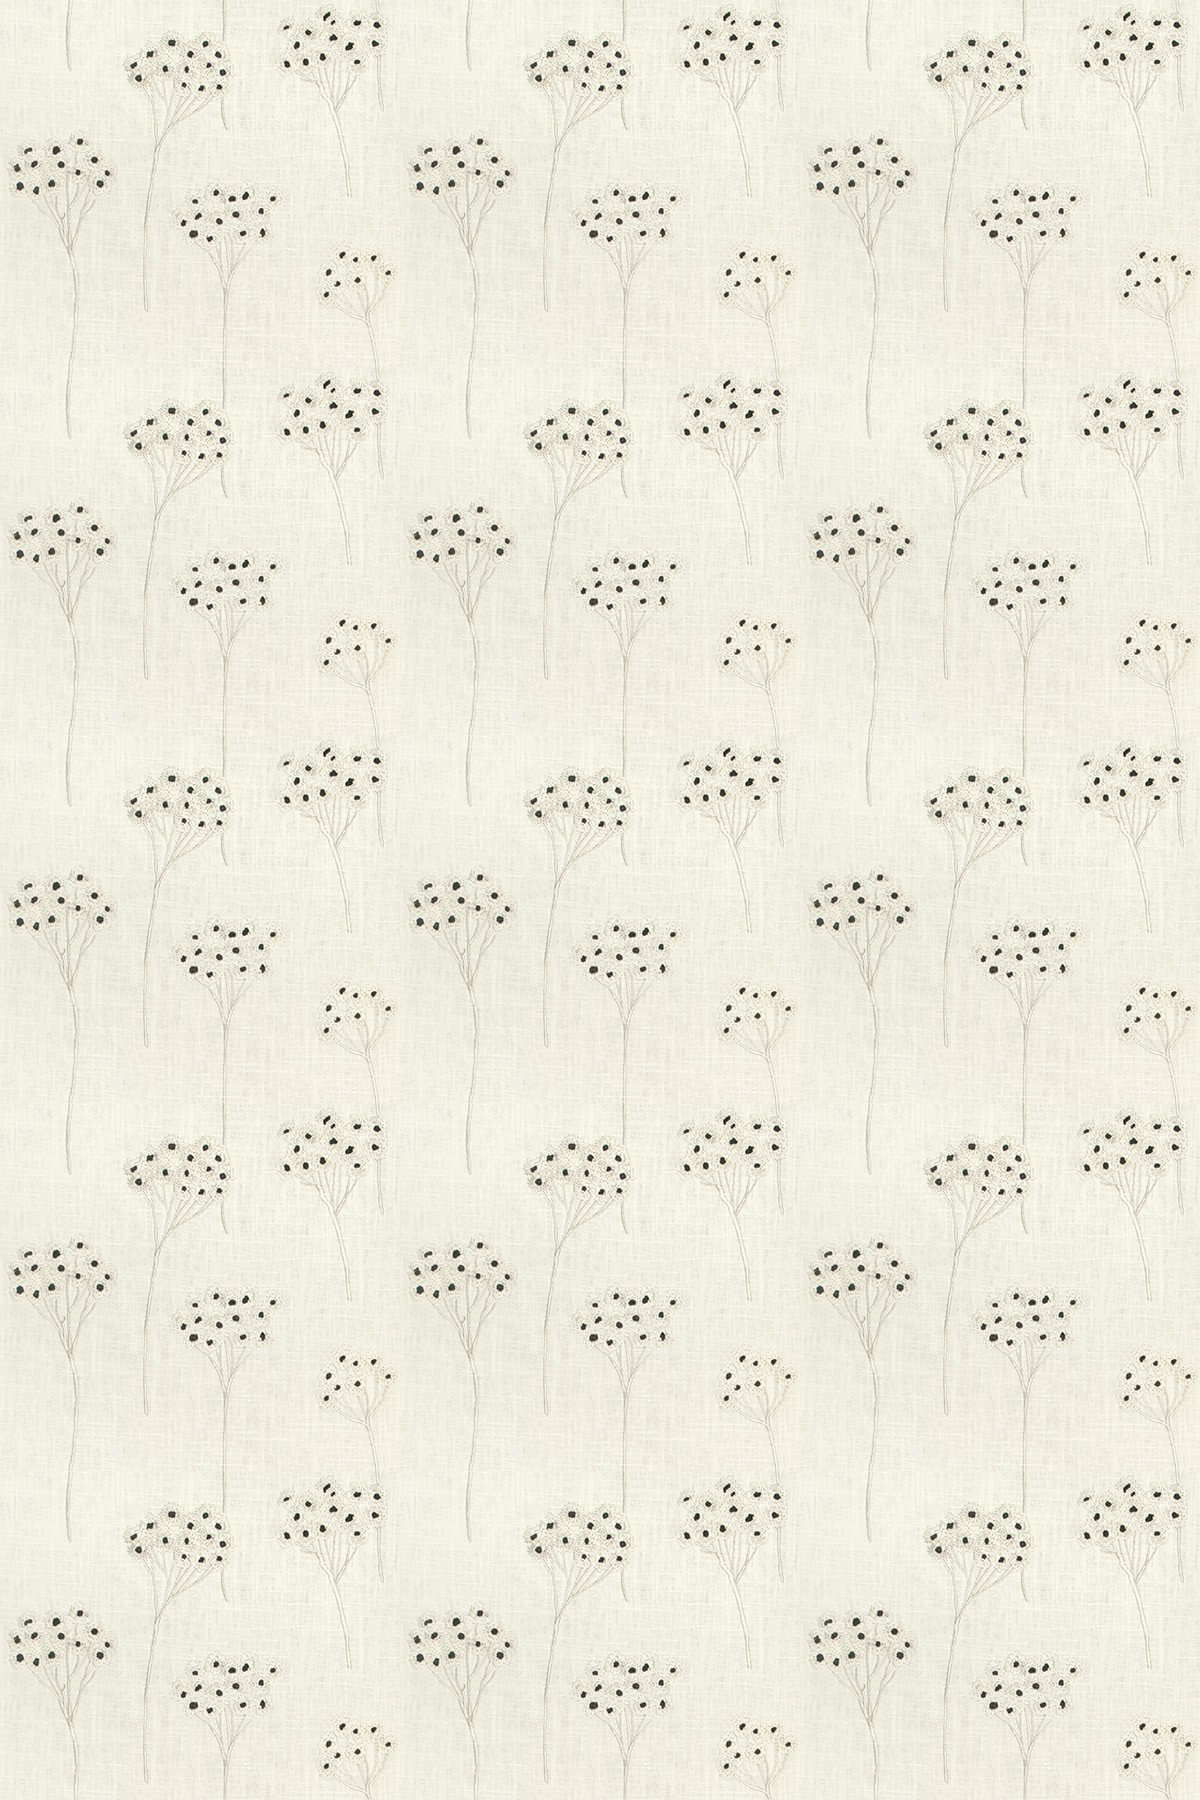 Image of Clarke & Clarke Fabric Cowslip Charcoal, F0485/02